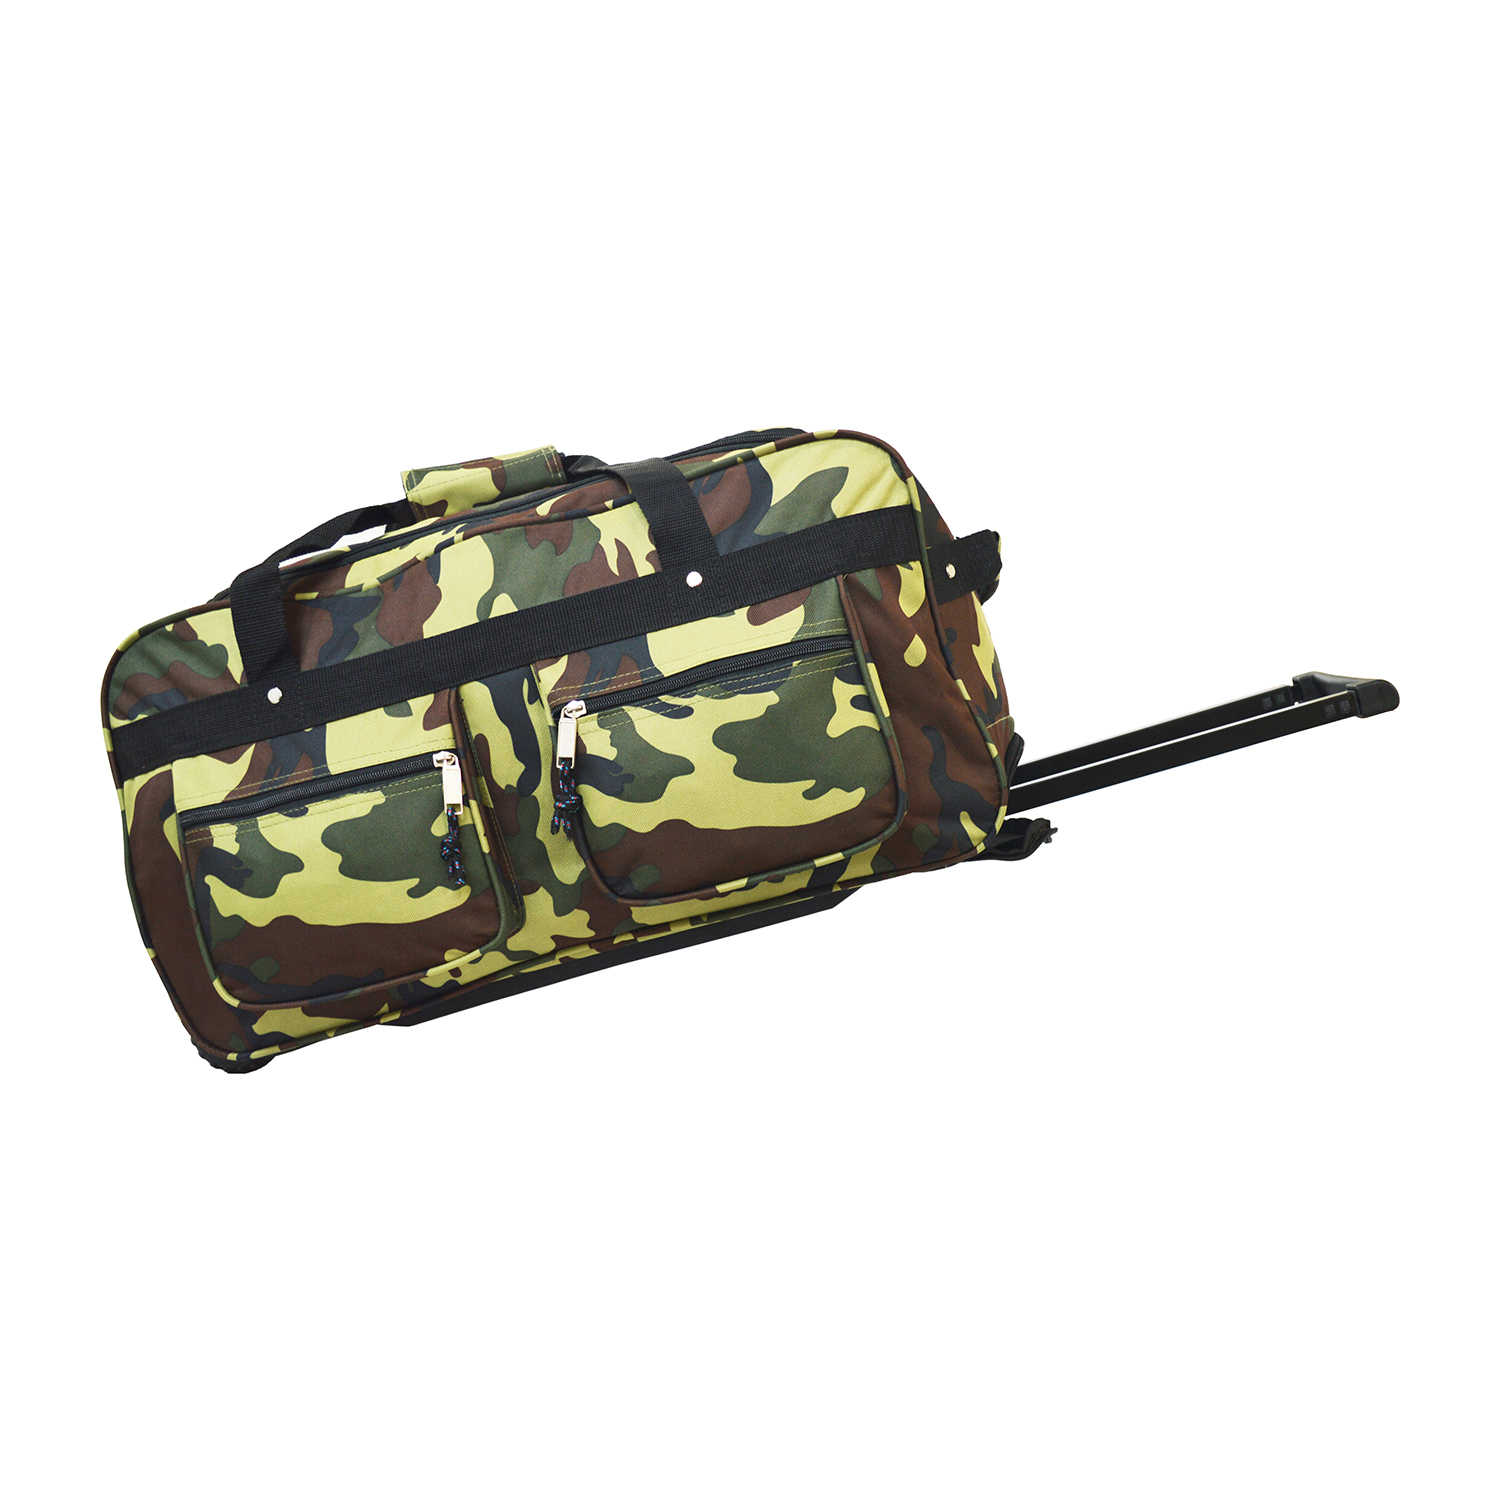 Every Day Carry Large Capacity Heavy Duty Rolling Duffel Bag